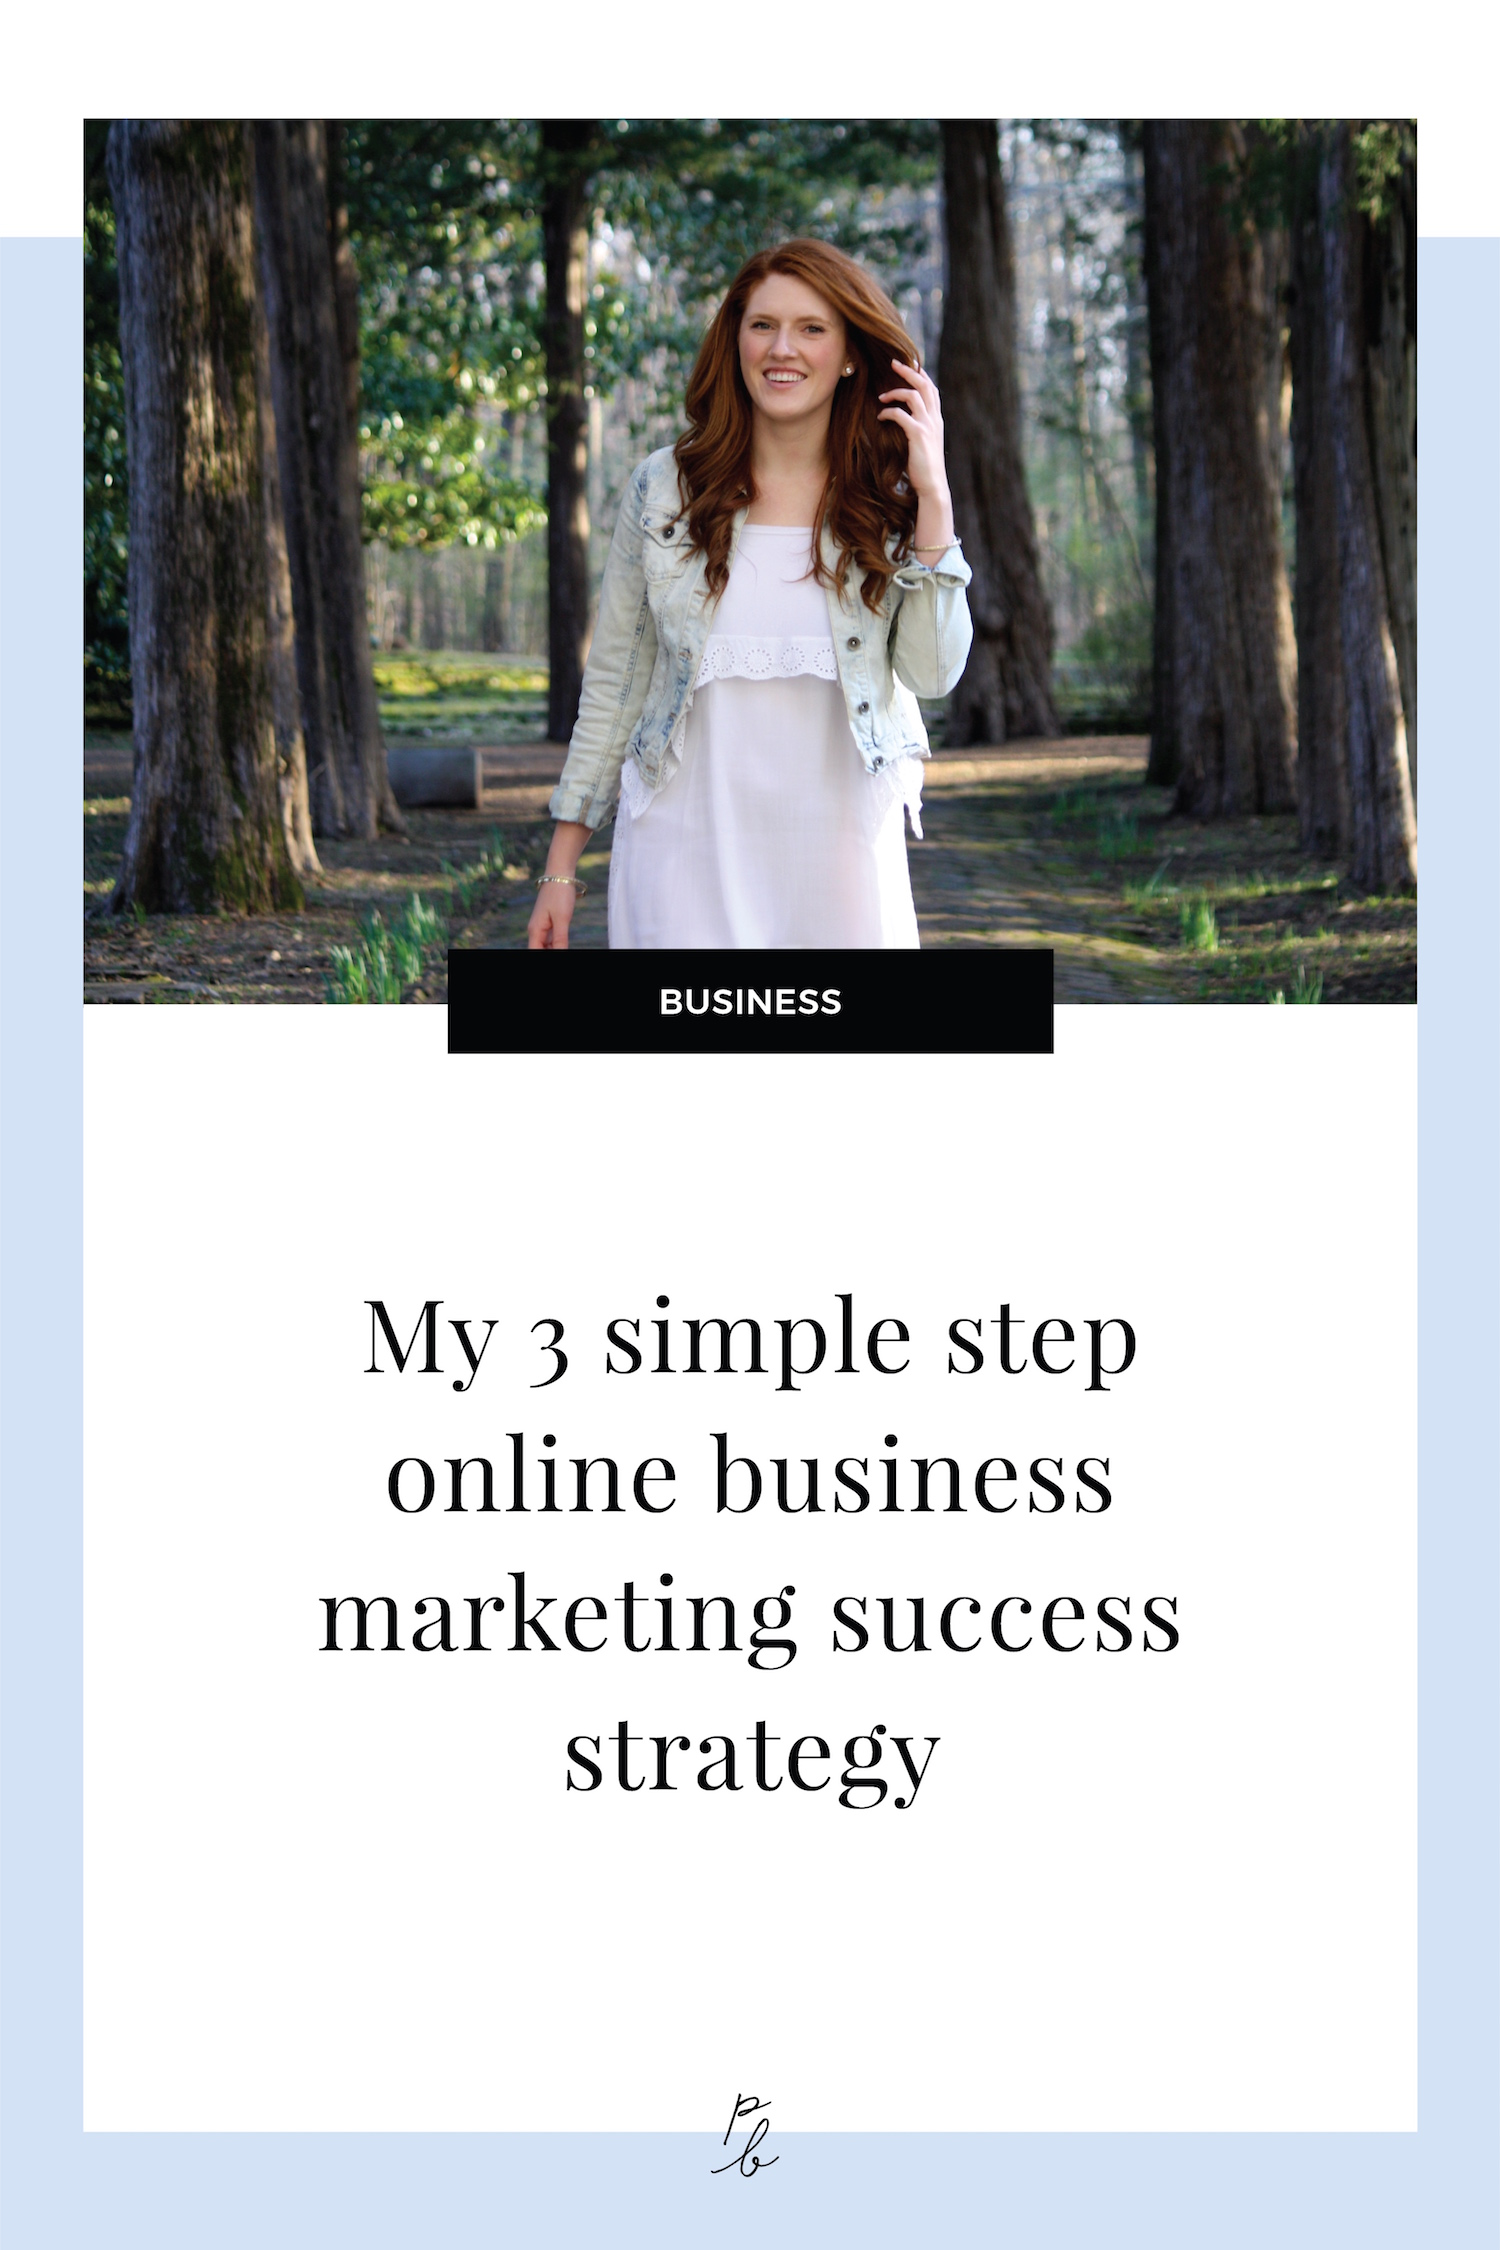 My 3 simple step online business marketing success strategy.jpg